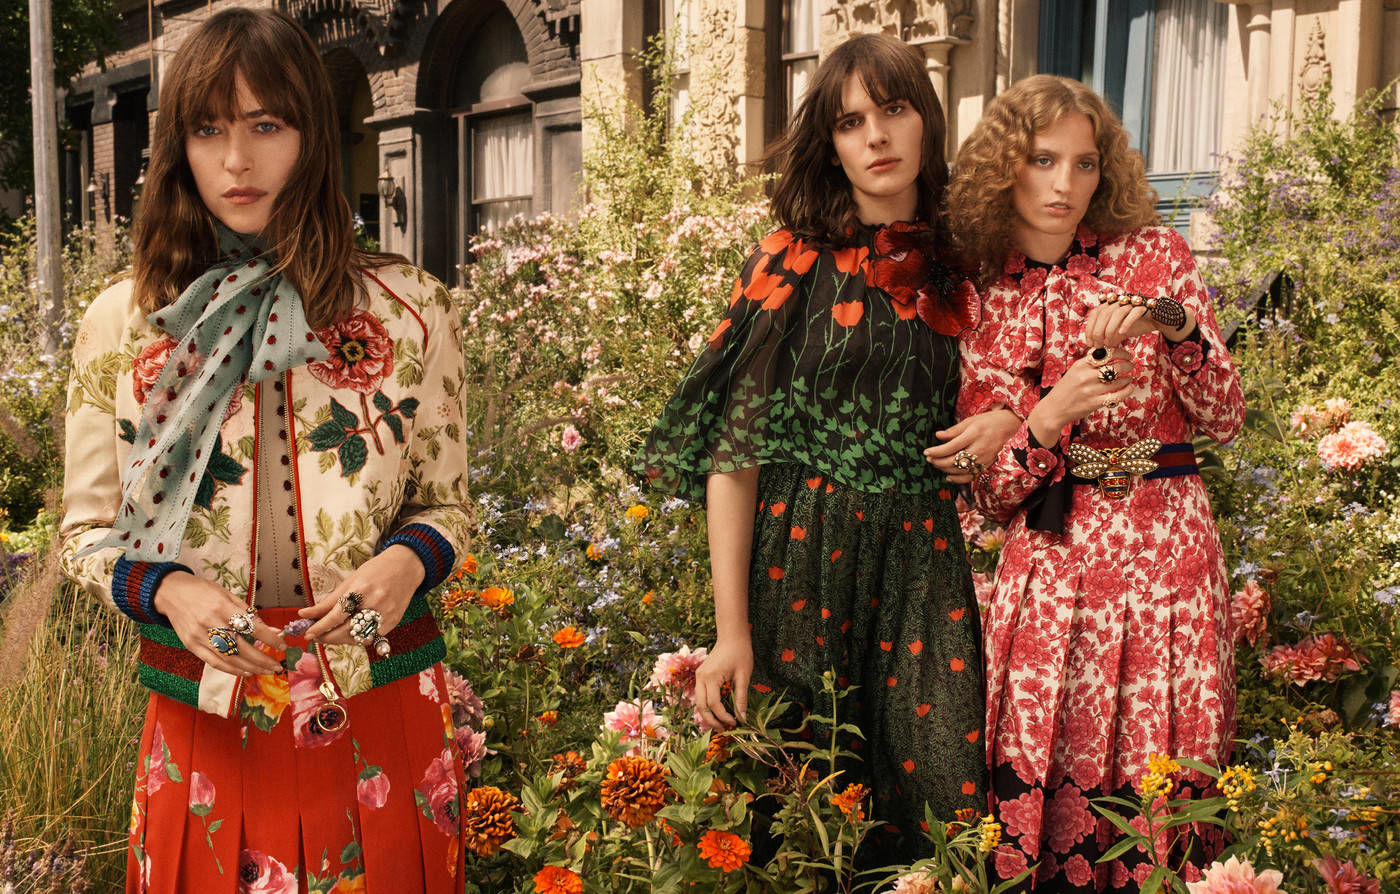 The Gucci Bloom Ads Featured an All-Star, Trans-Inclusive Cast